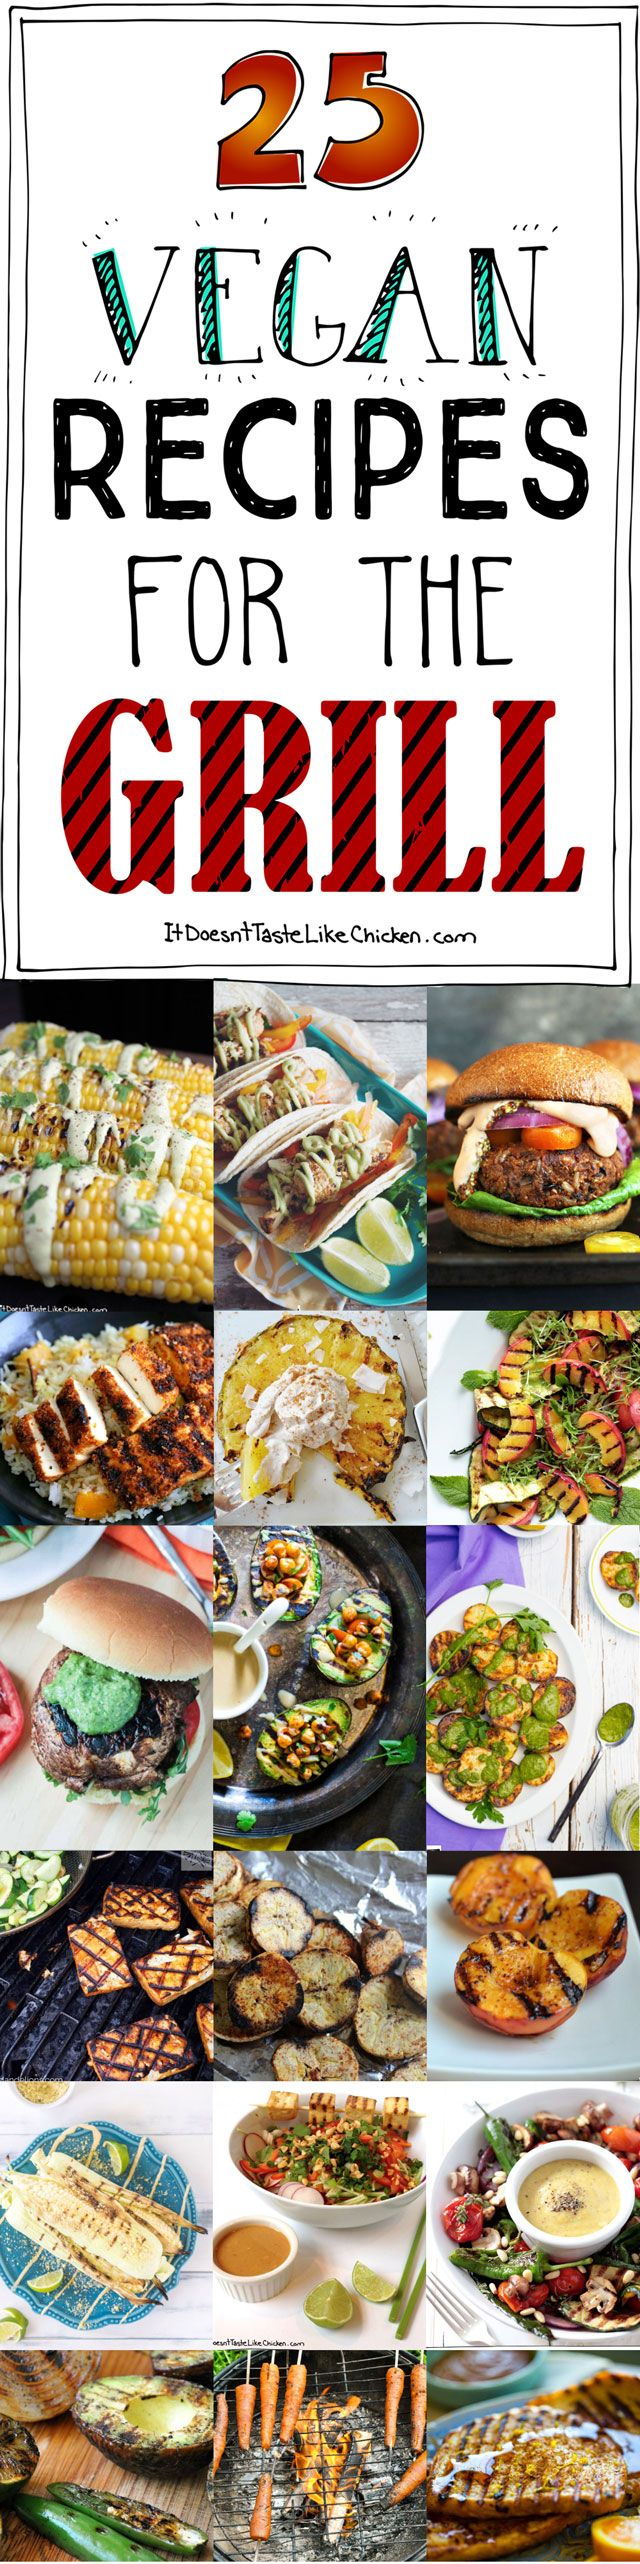 25 Vegan Recipes for the Grill  #vegan #grillen Entdeckt von www.vegaliferocks.de✨ I Fleischlos glücklich, fit & Gesund✨ I Follow me for more inspiration  @ vegaliferocks